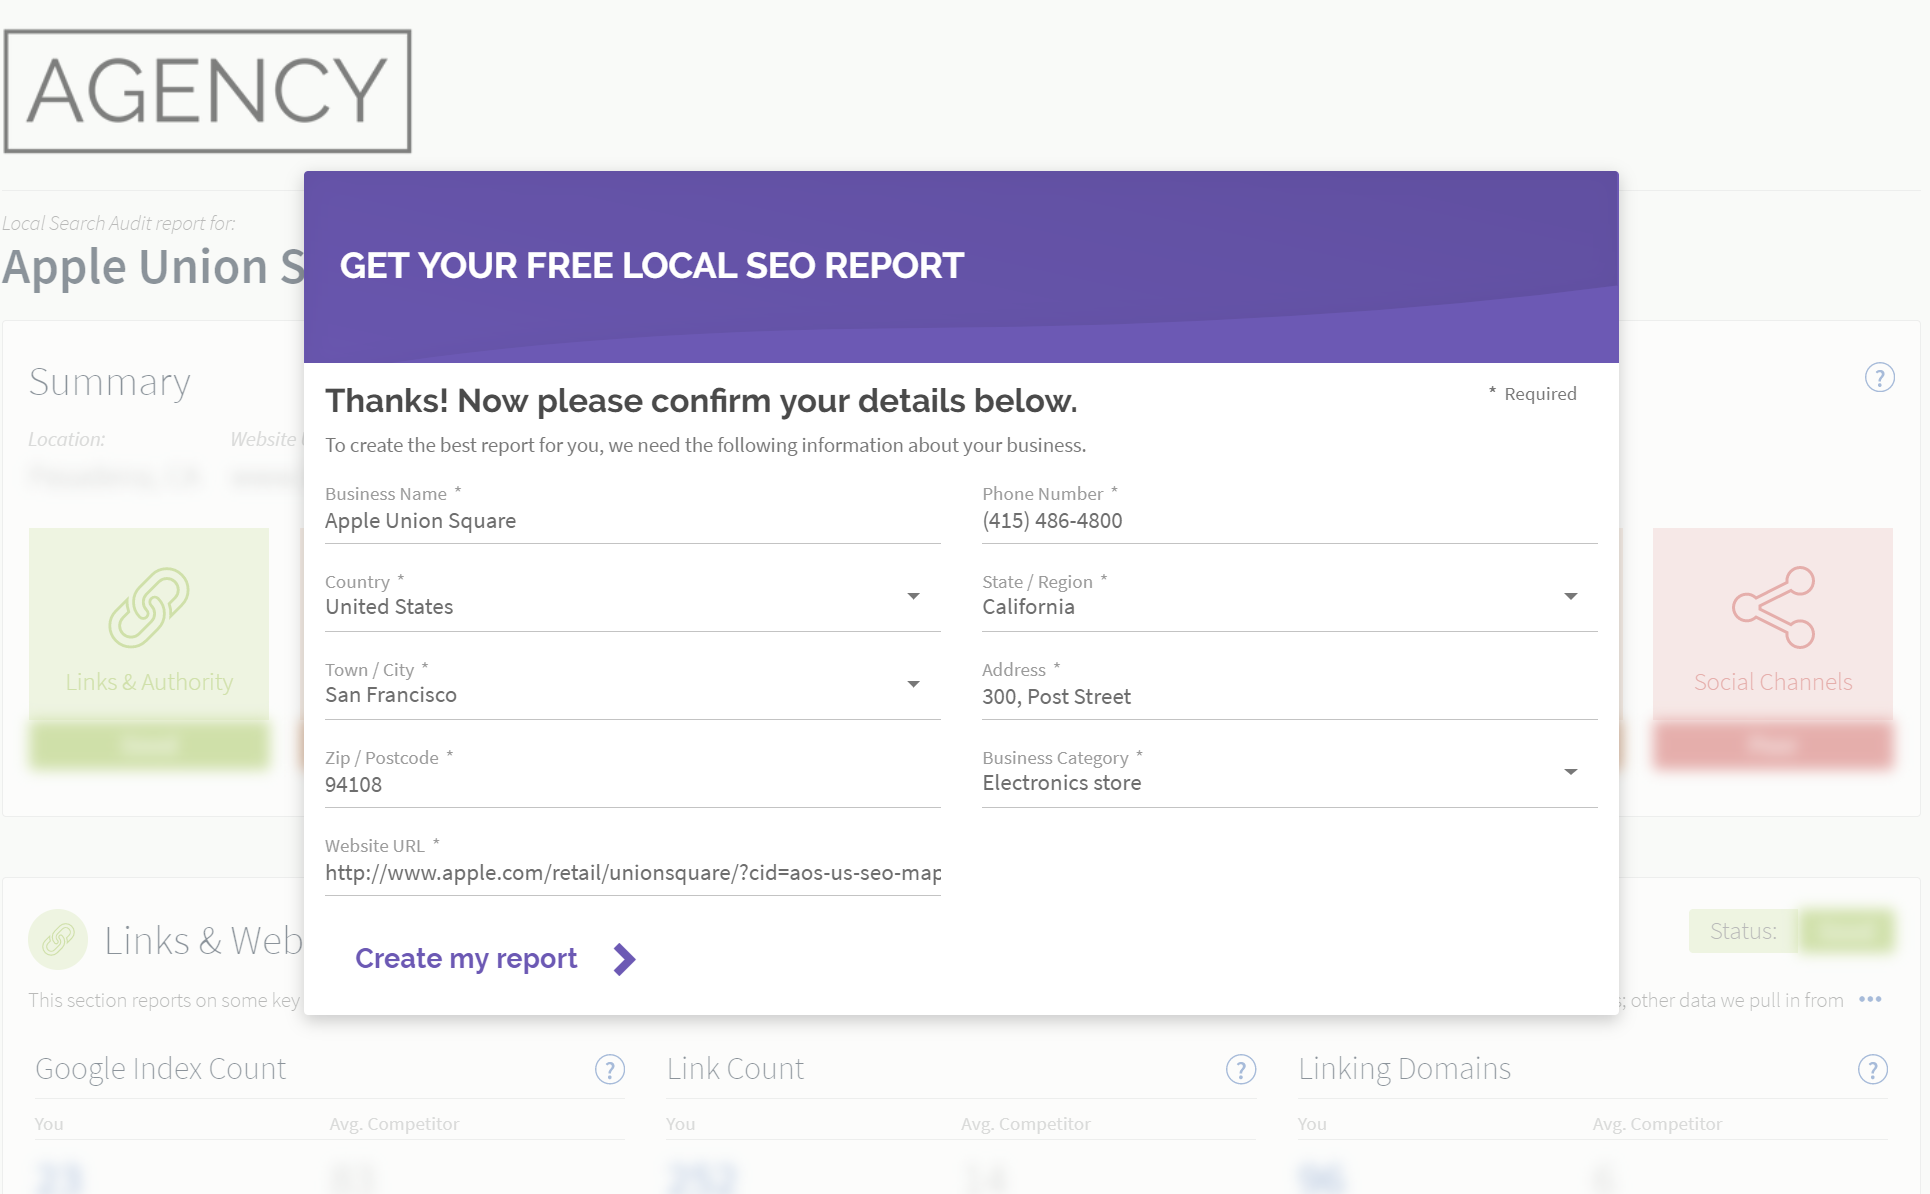 AwesomeScreenshot-https-www-local-marketing-reports-com-external-lead-gen-business-27583-2019-07-03-16-07-59.png